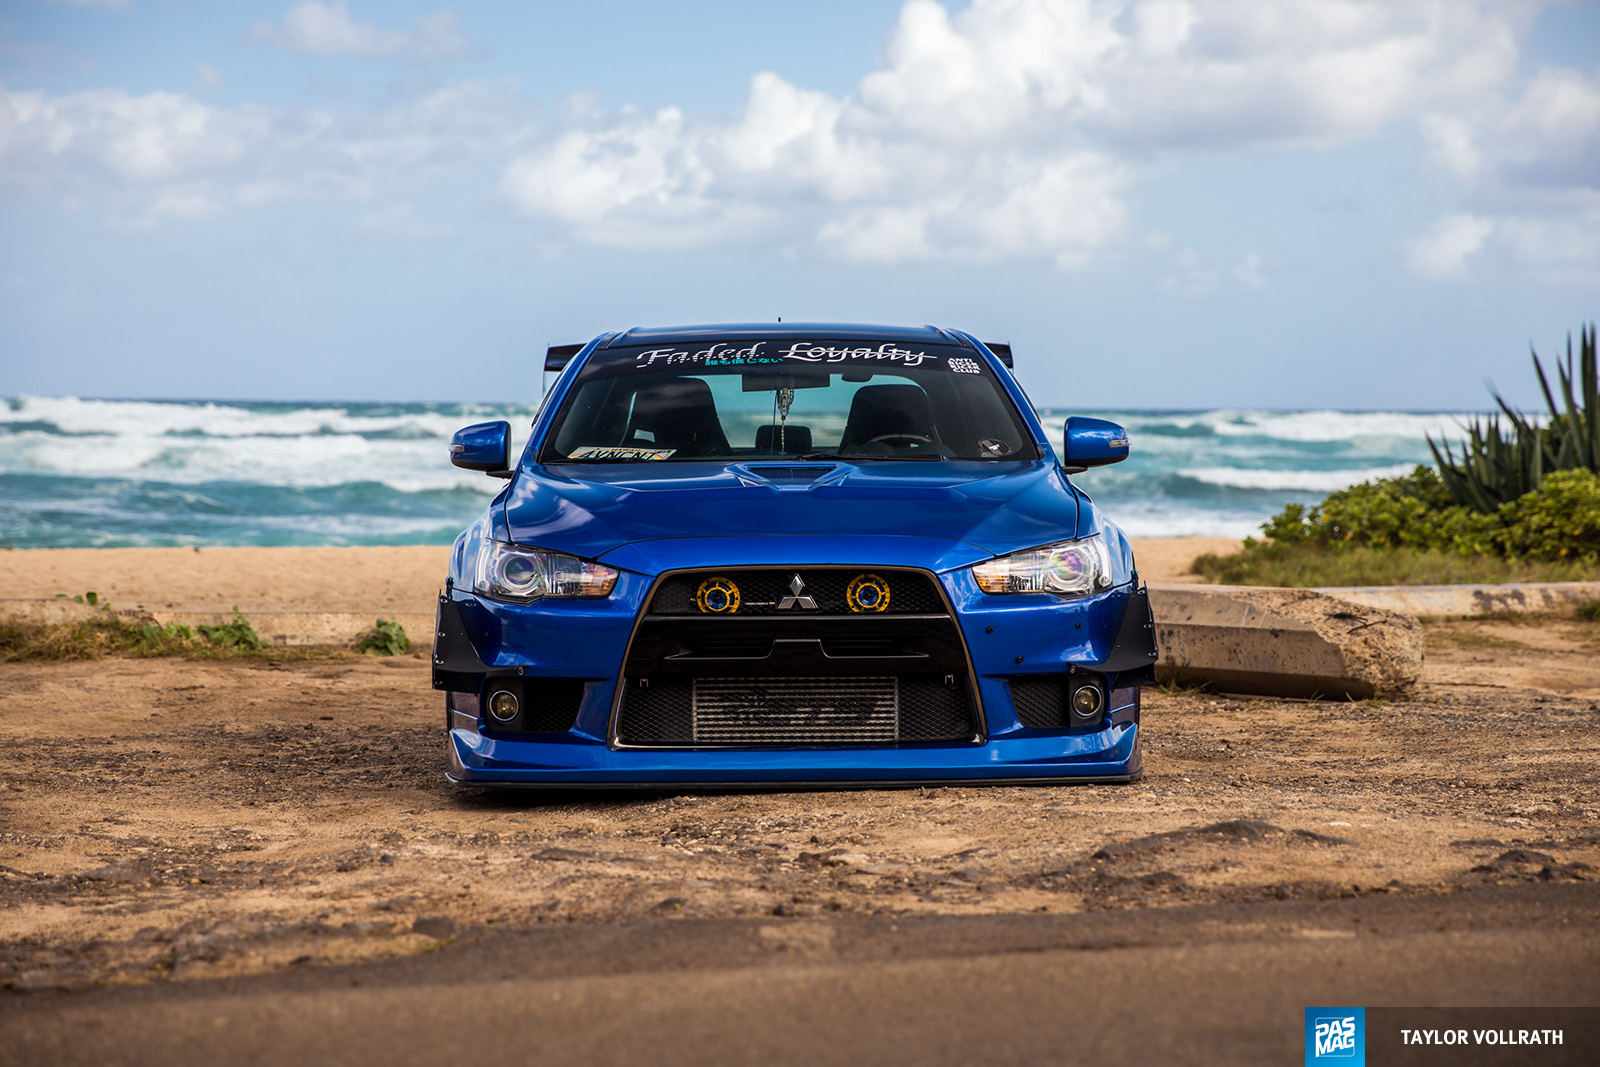 02 JM Andrada 2015 Mitsubishi Evolution X PASMAG Tuner Battlegrounds